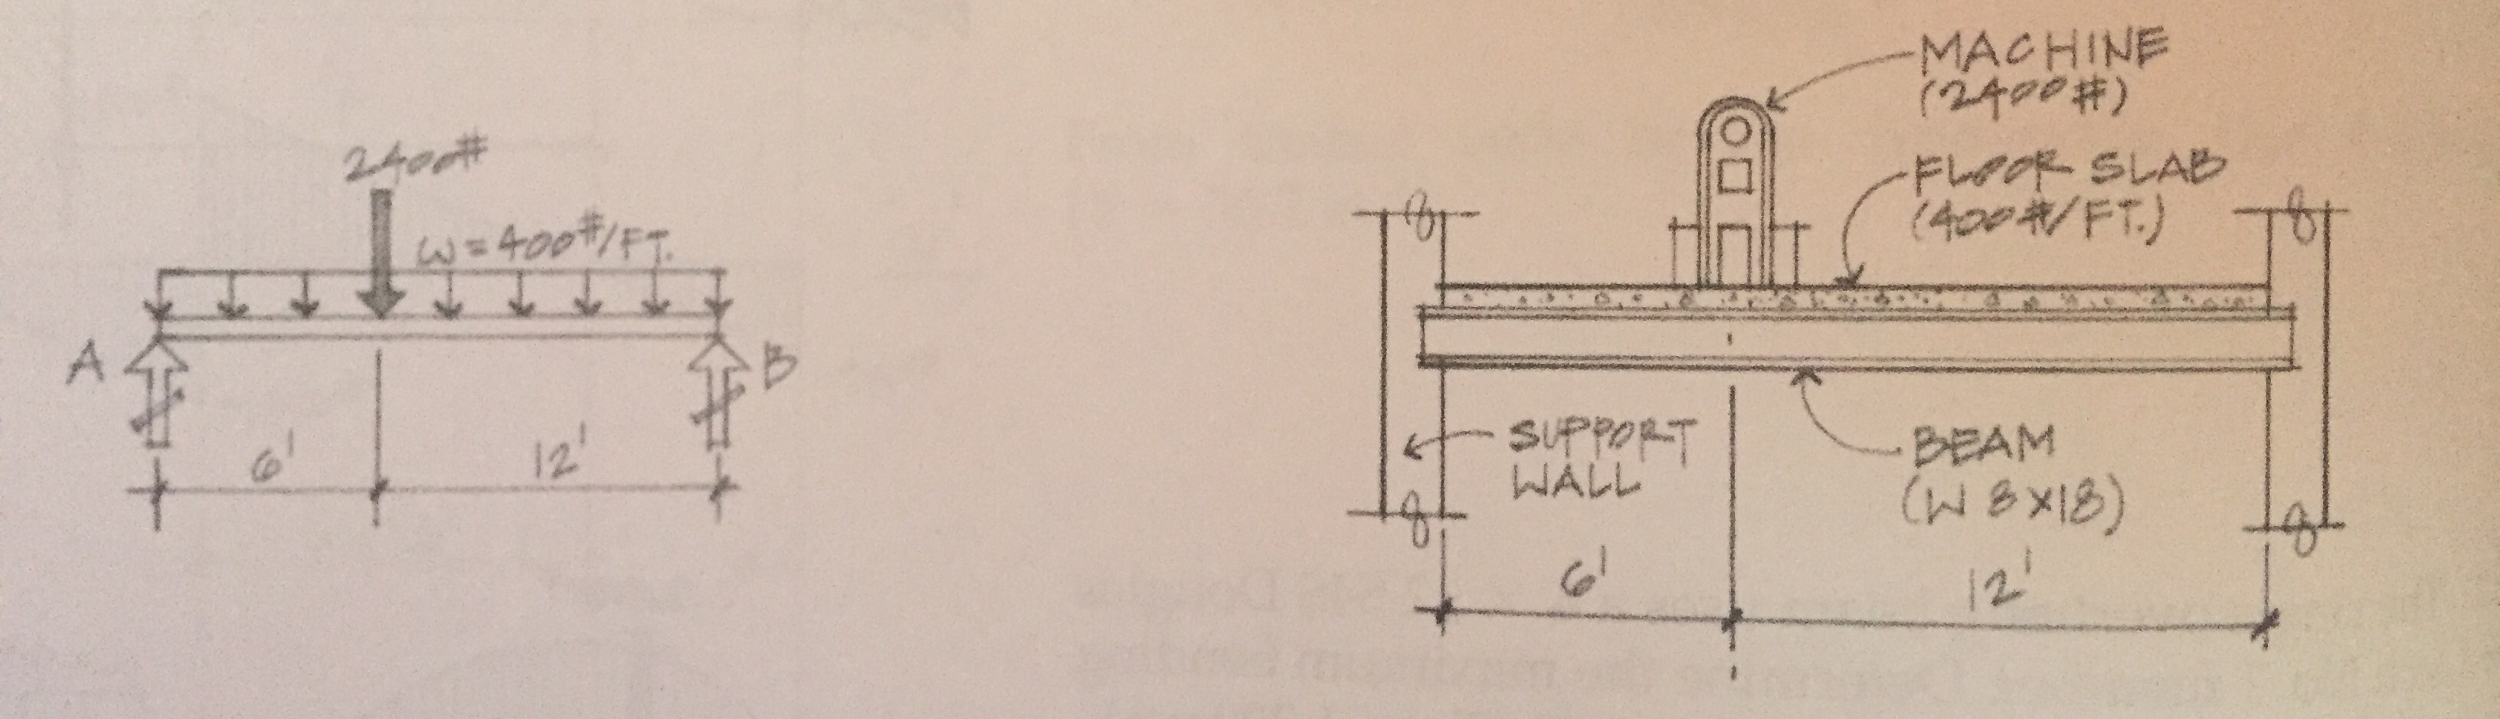 Solved A W8 X 18 Floor Beam Supports Concrete Slab And Draw The Shear Moment Diagram Cheggcom